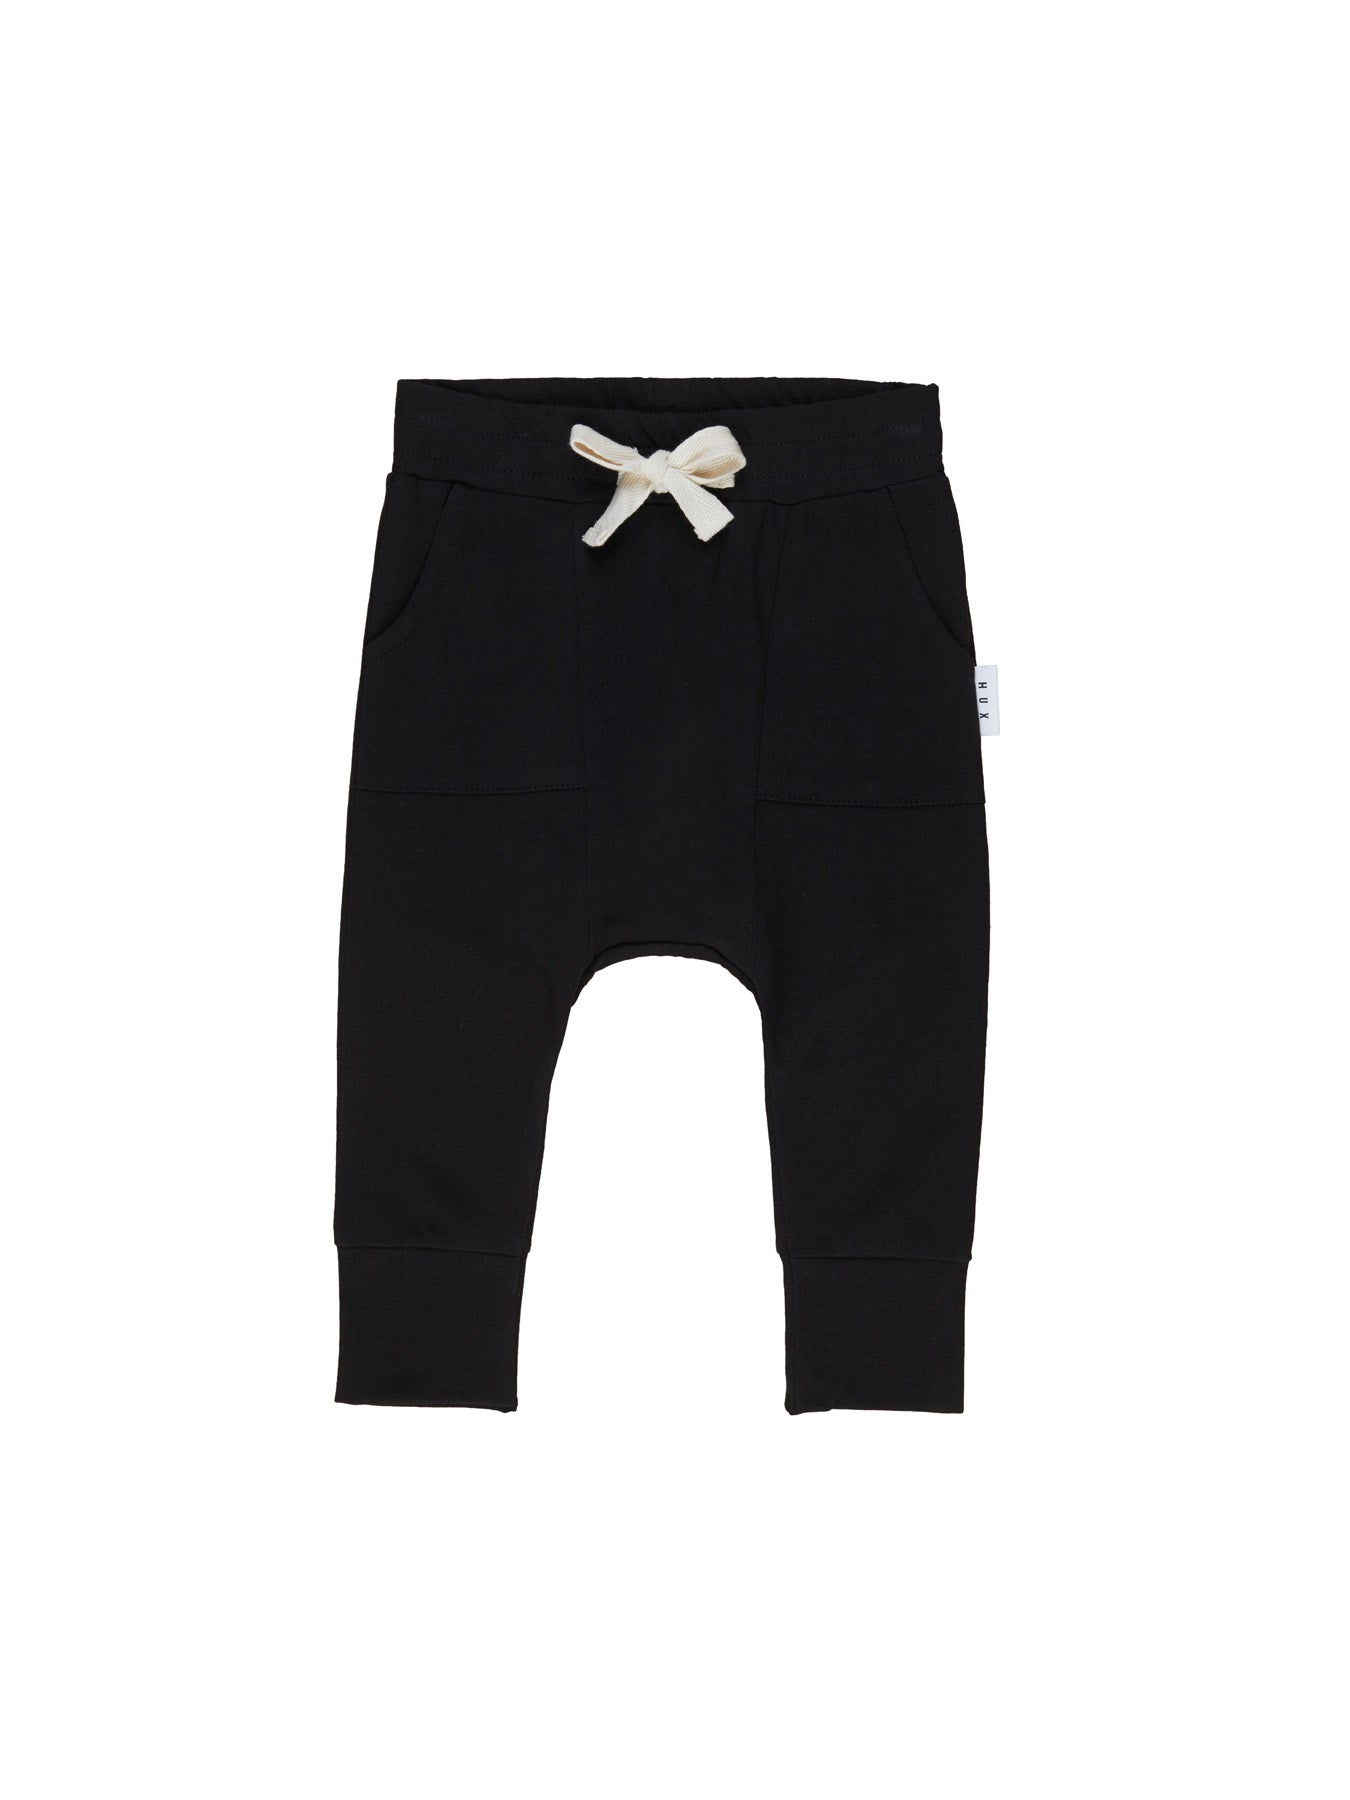 Black Pocket Drop Crotch Pant | Black